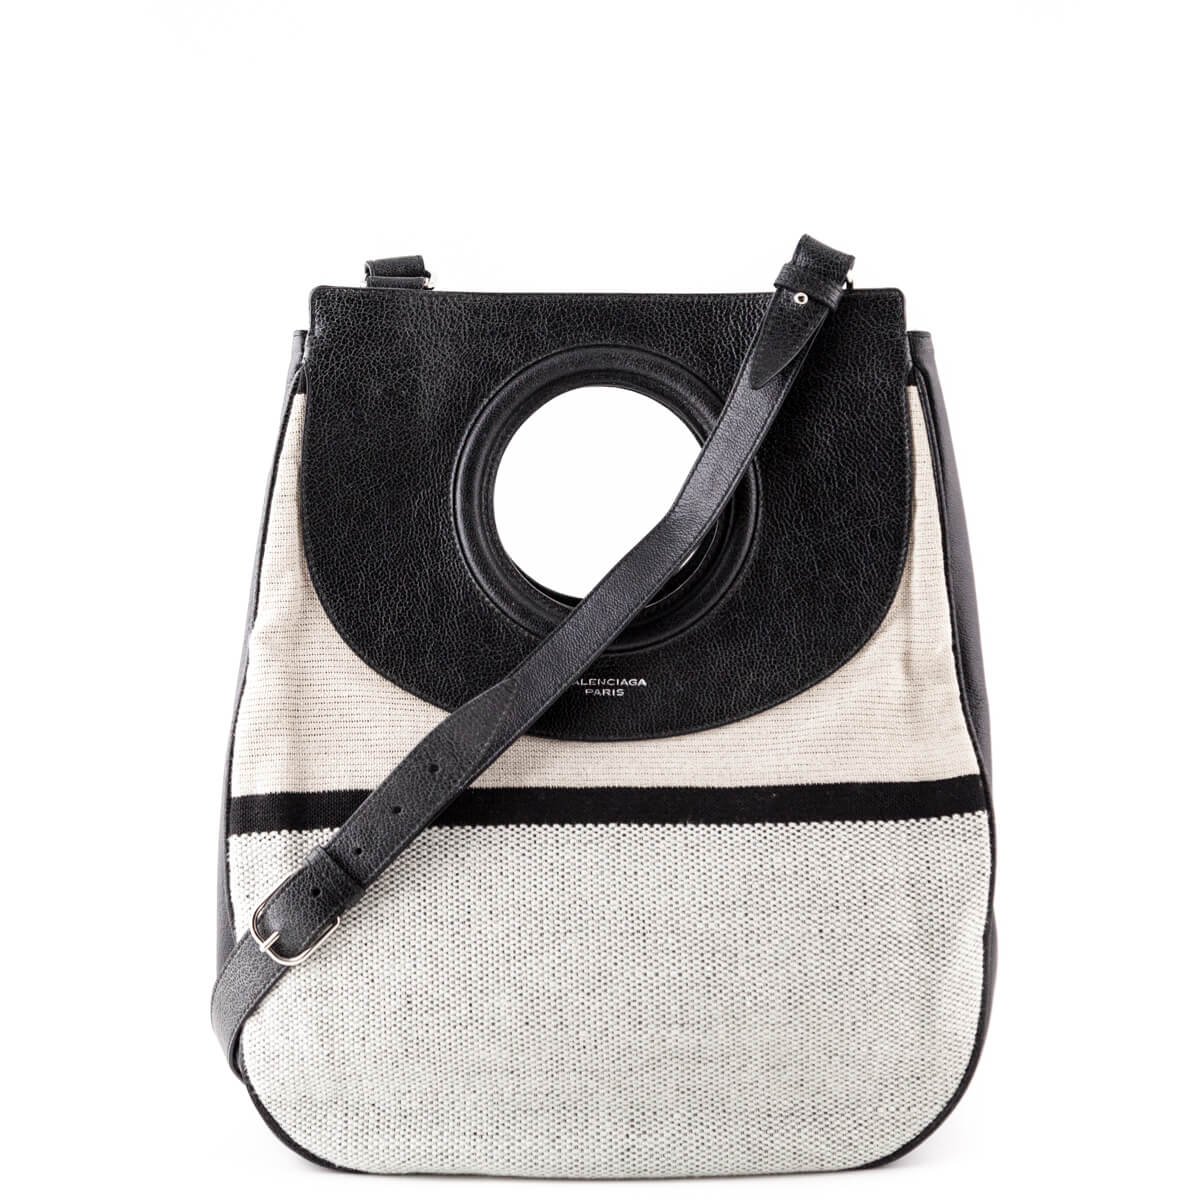 027950bc7a9f Balenciaga Canvas and Leather 1968 Top Handle - LOVE that BAG - Preowned  Authentic Designer Handbags ...